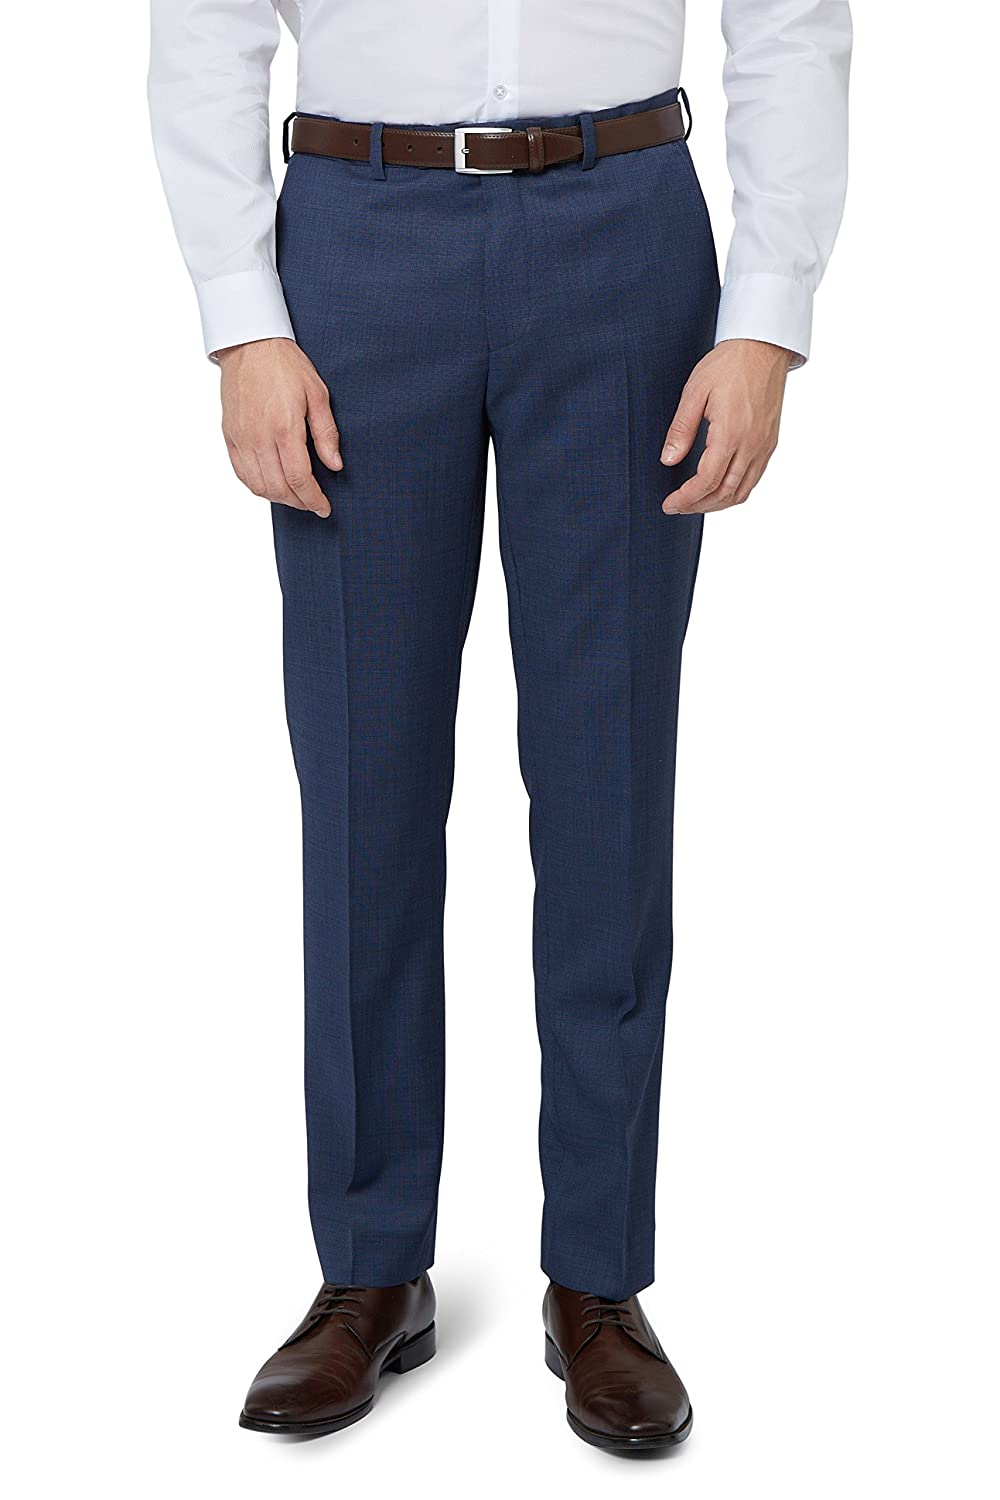 DKNY Slim Fit Blue Pinhead Trousers